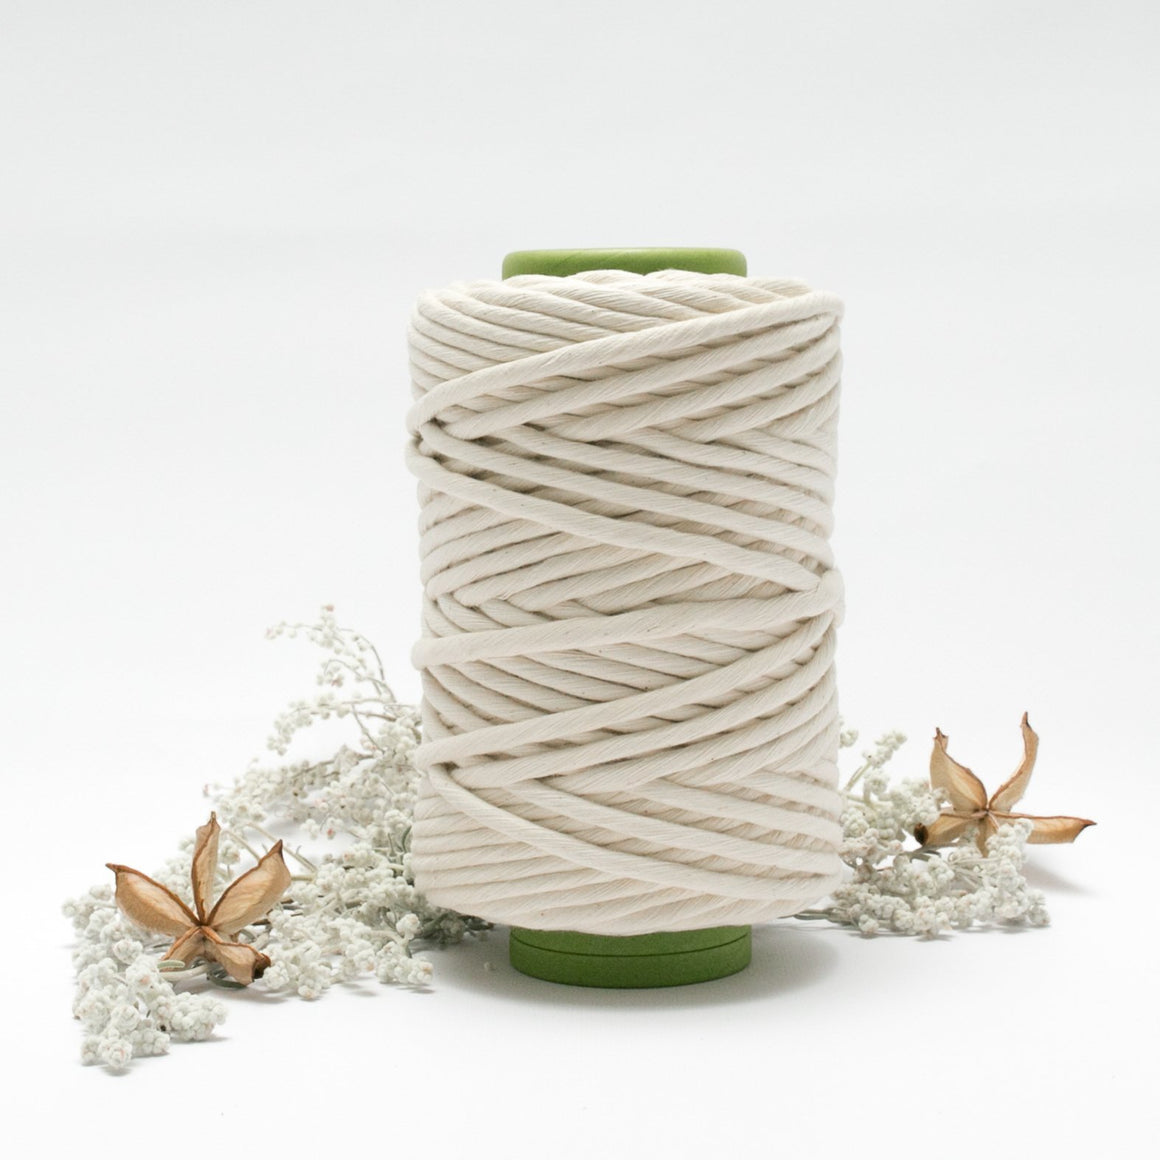 8mm - Natural Luxe Cotton String - Cotton String - Mary Maker Studio - [macrame] - [weaving] - [macrame_art] - [macrame_rope] - [macrame_cord] - [macrame_workshops] - [macrame_string] - [learn-_to_macrame] - [macrame_patterns]